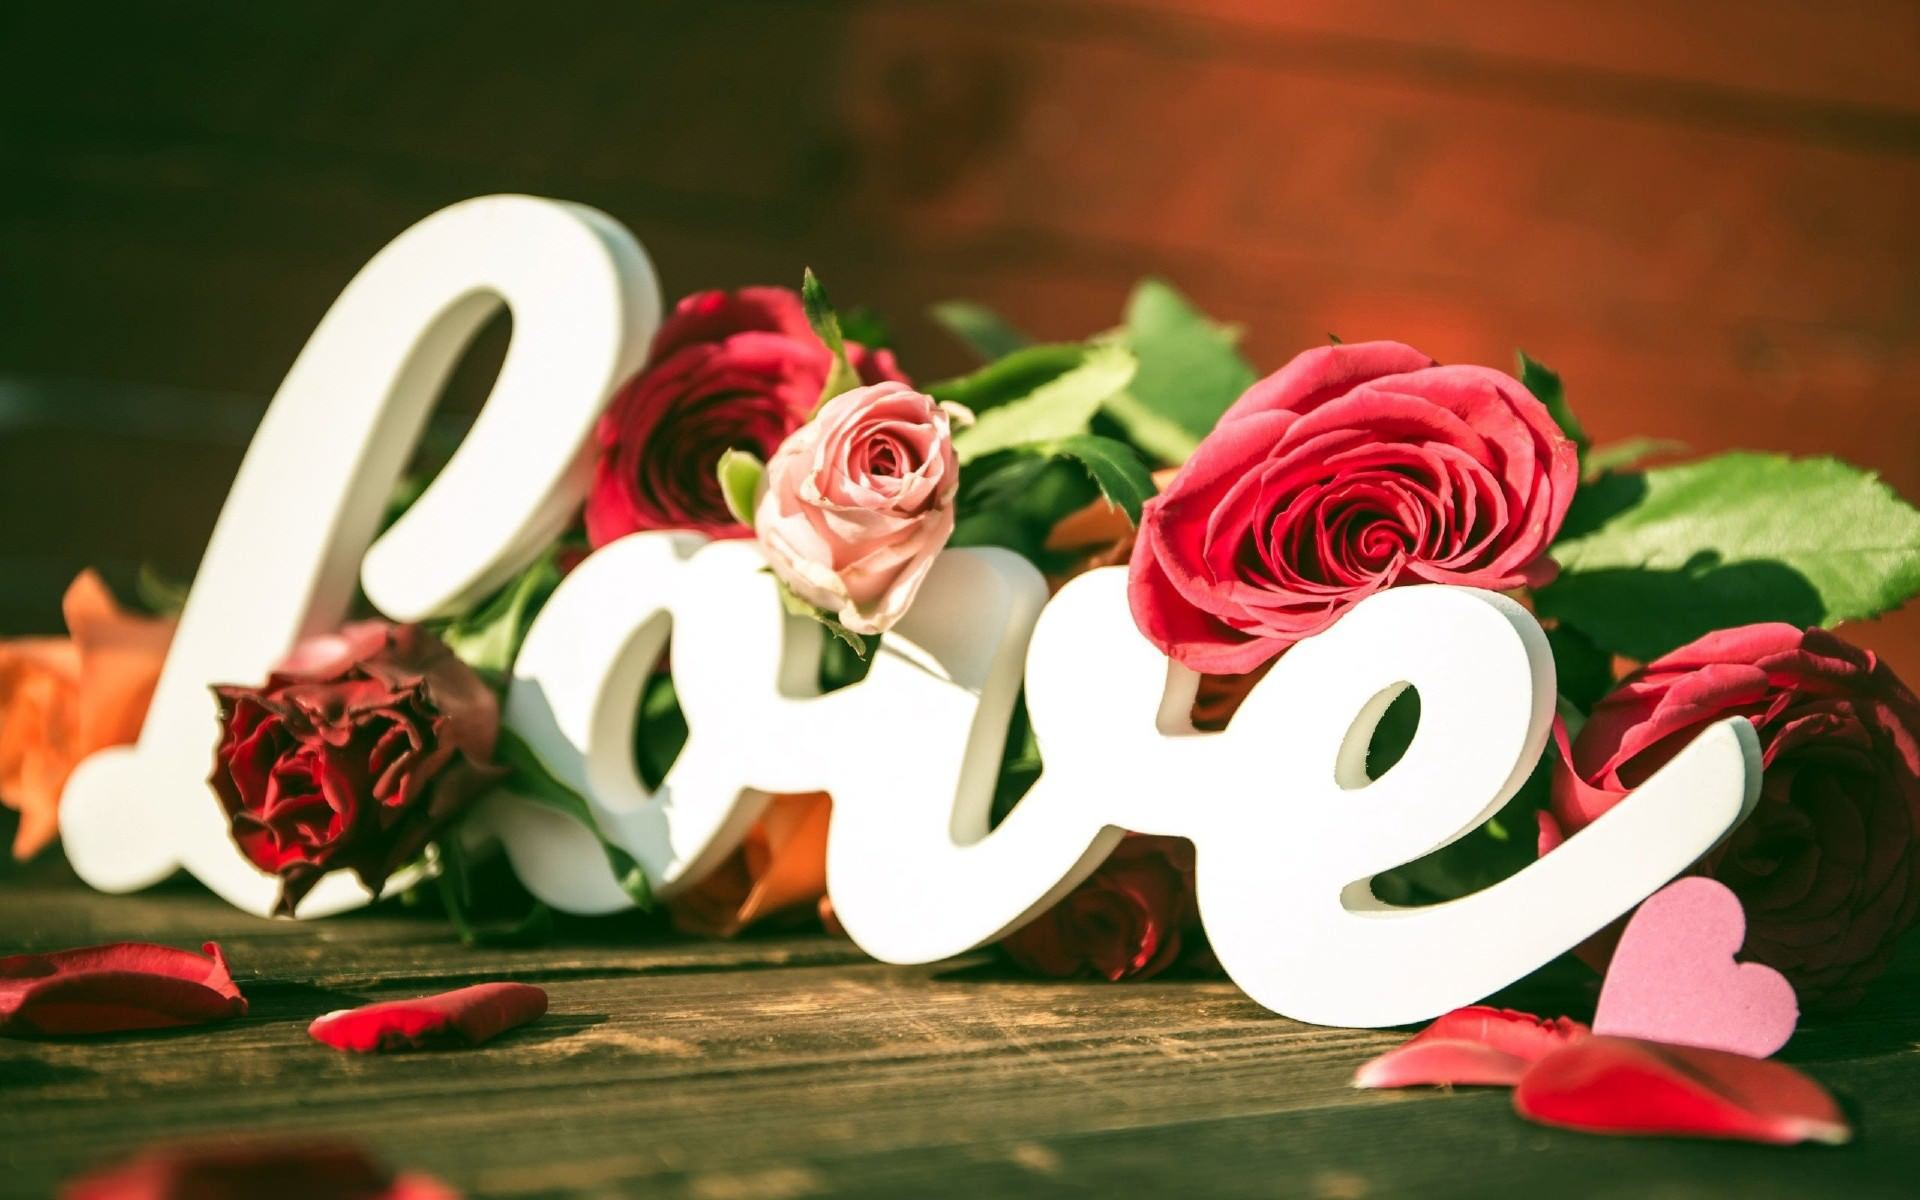 Beautiful Love Wallpapers For Desktop